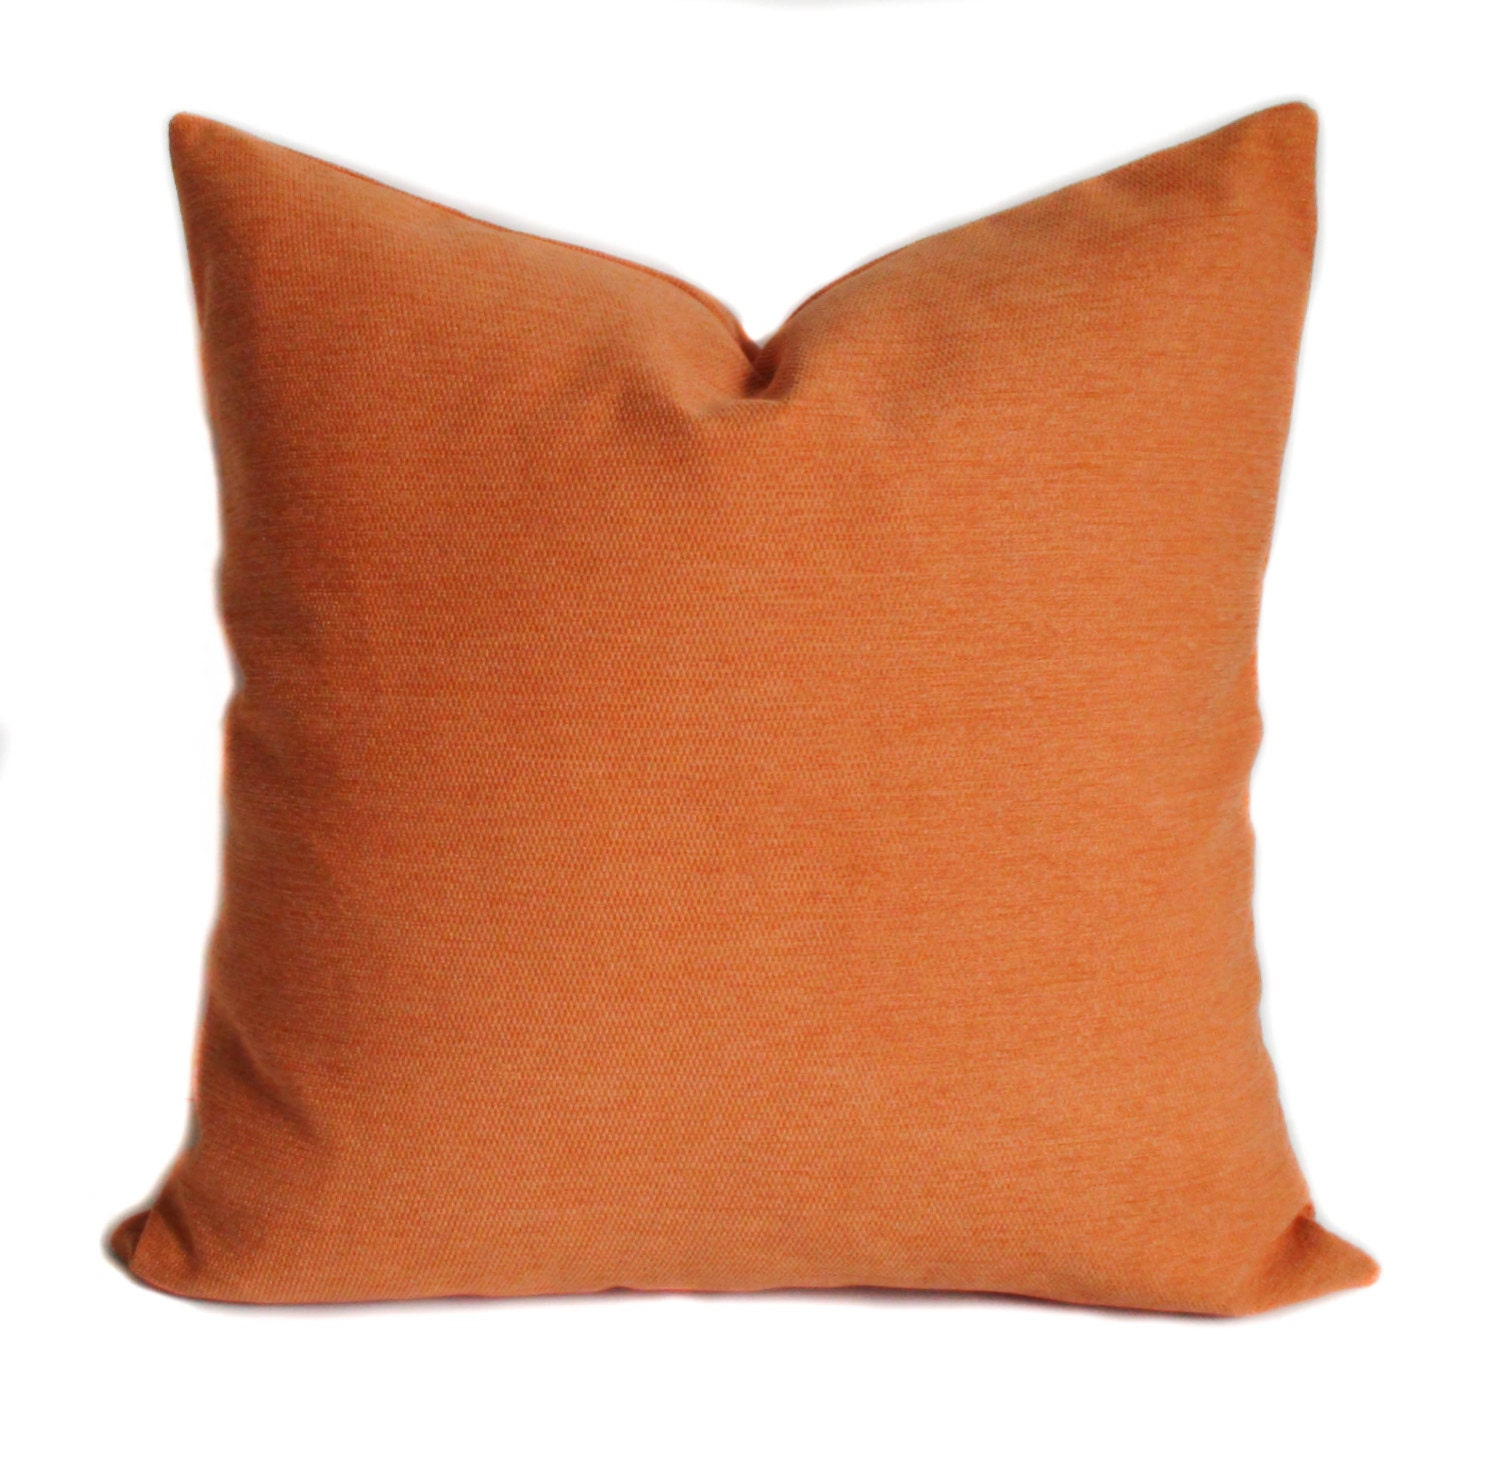 Orange Decorative Pillows Couch : Orange pillow cover Orange pillows Throw pillow Couch